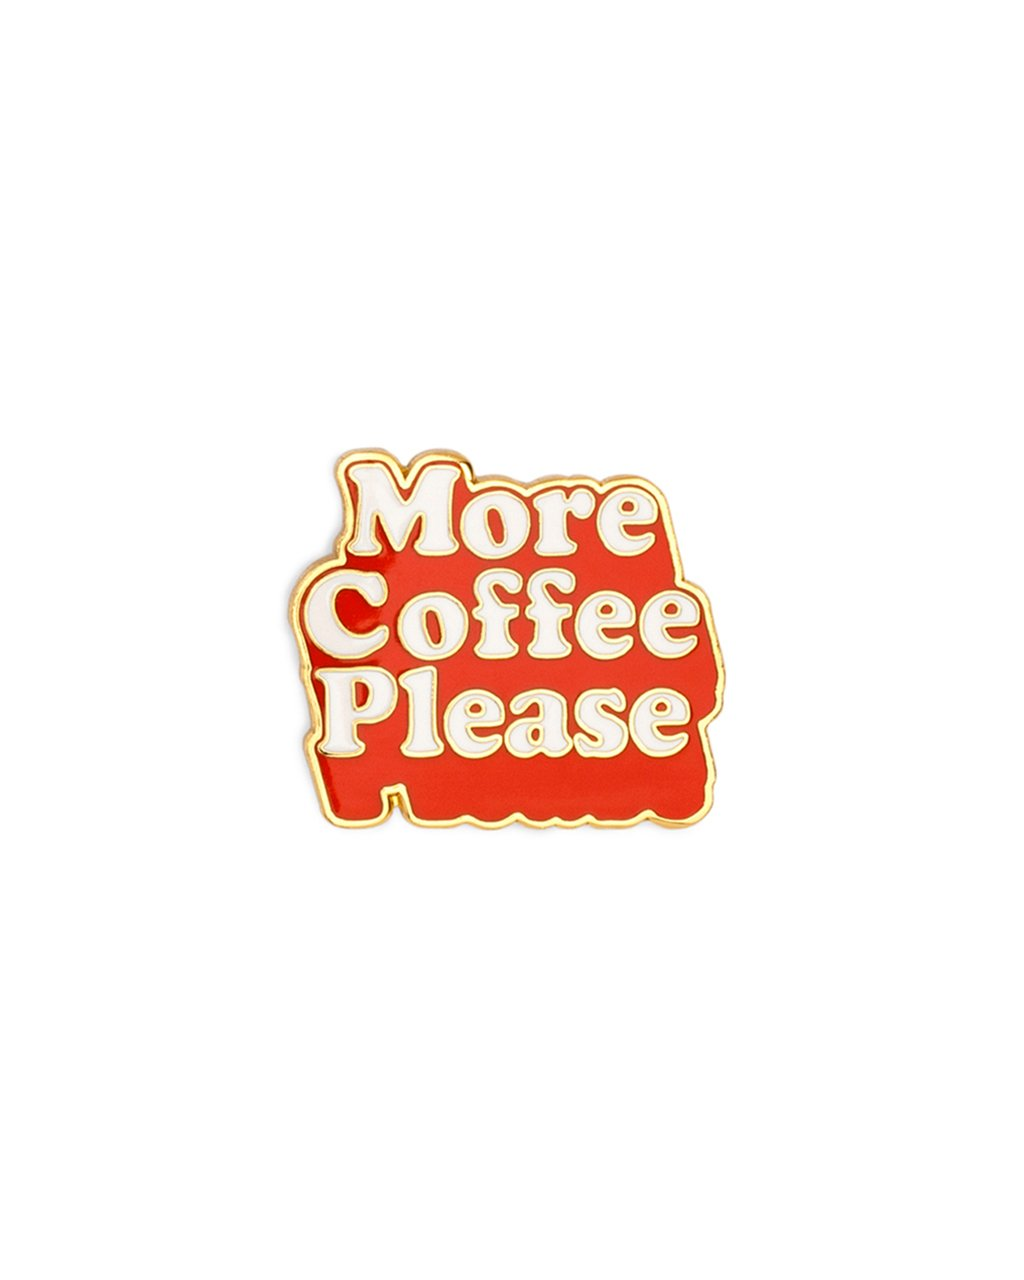 More Coffee Please Enamel Pin